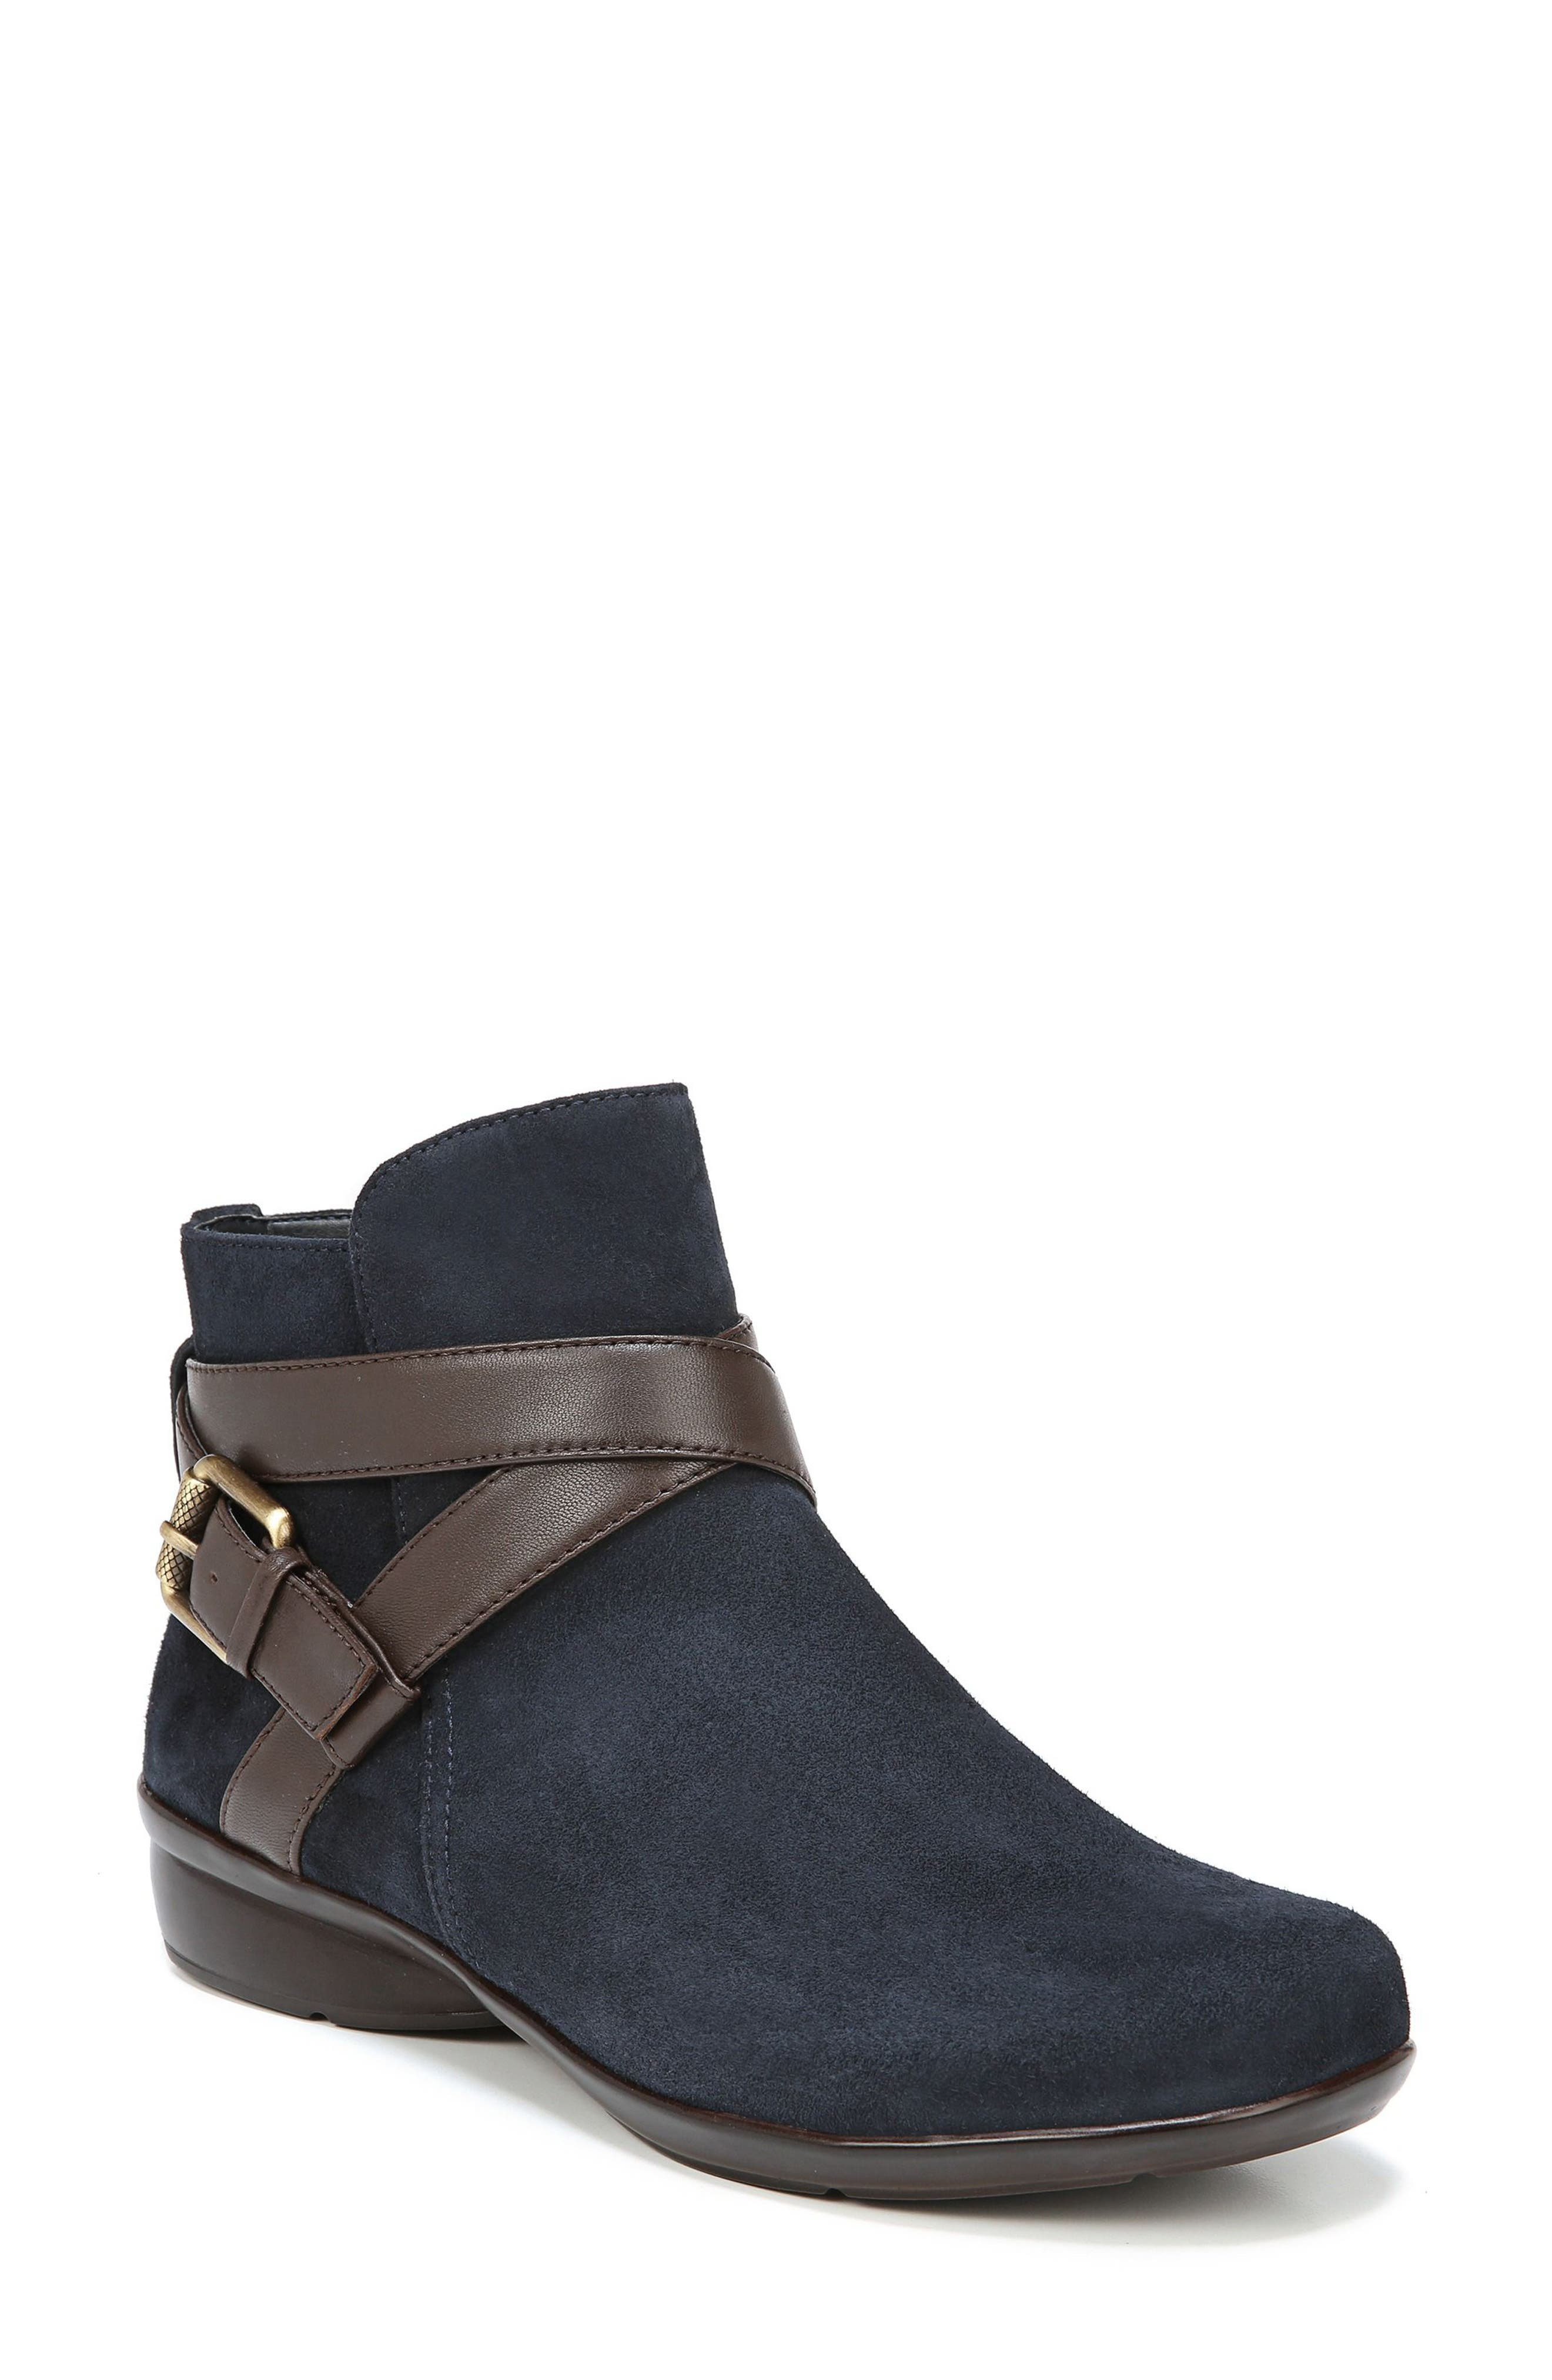 Cassandra Buckle Strap Bootie,                             Main thumbnail 1, color,                             NAVY/ BROWN SUEDE